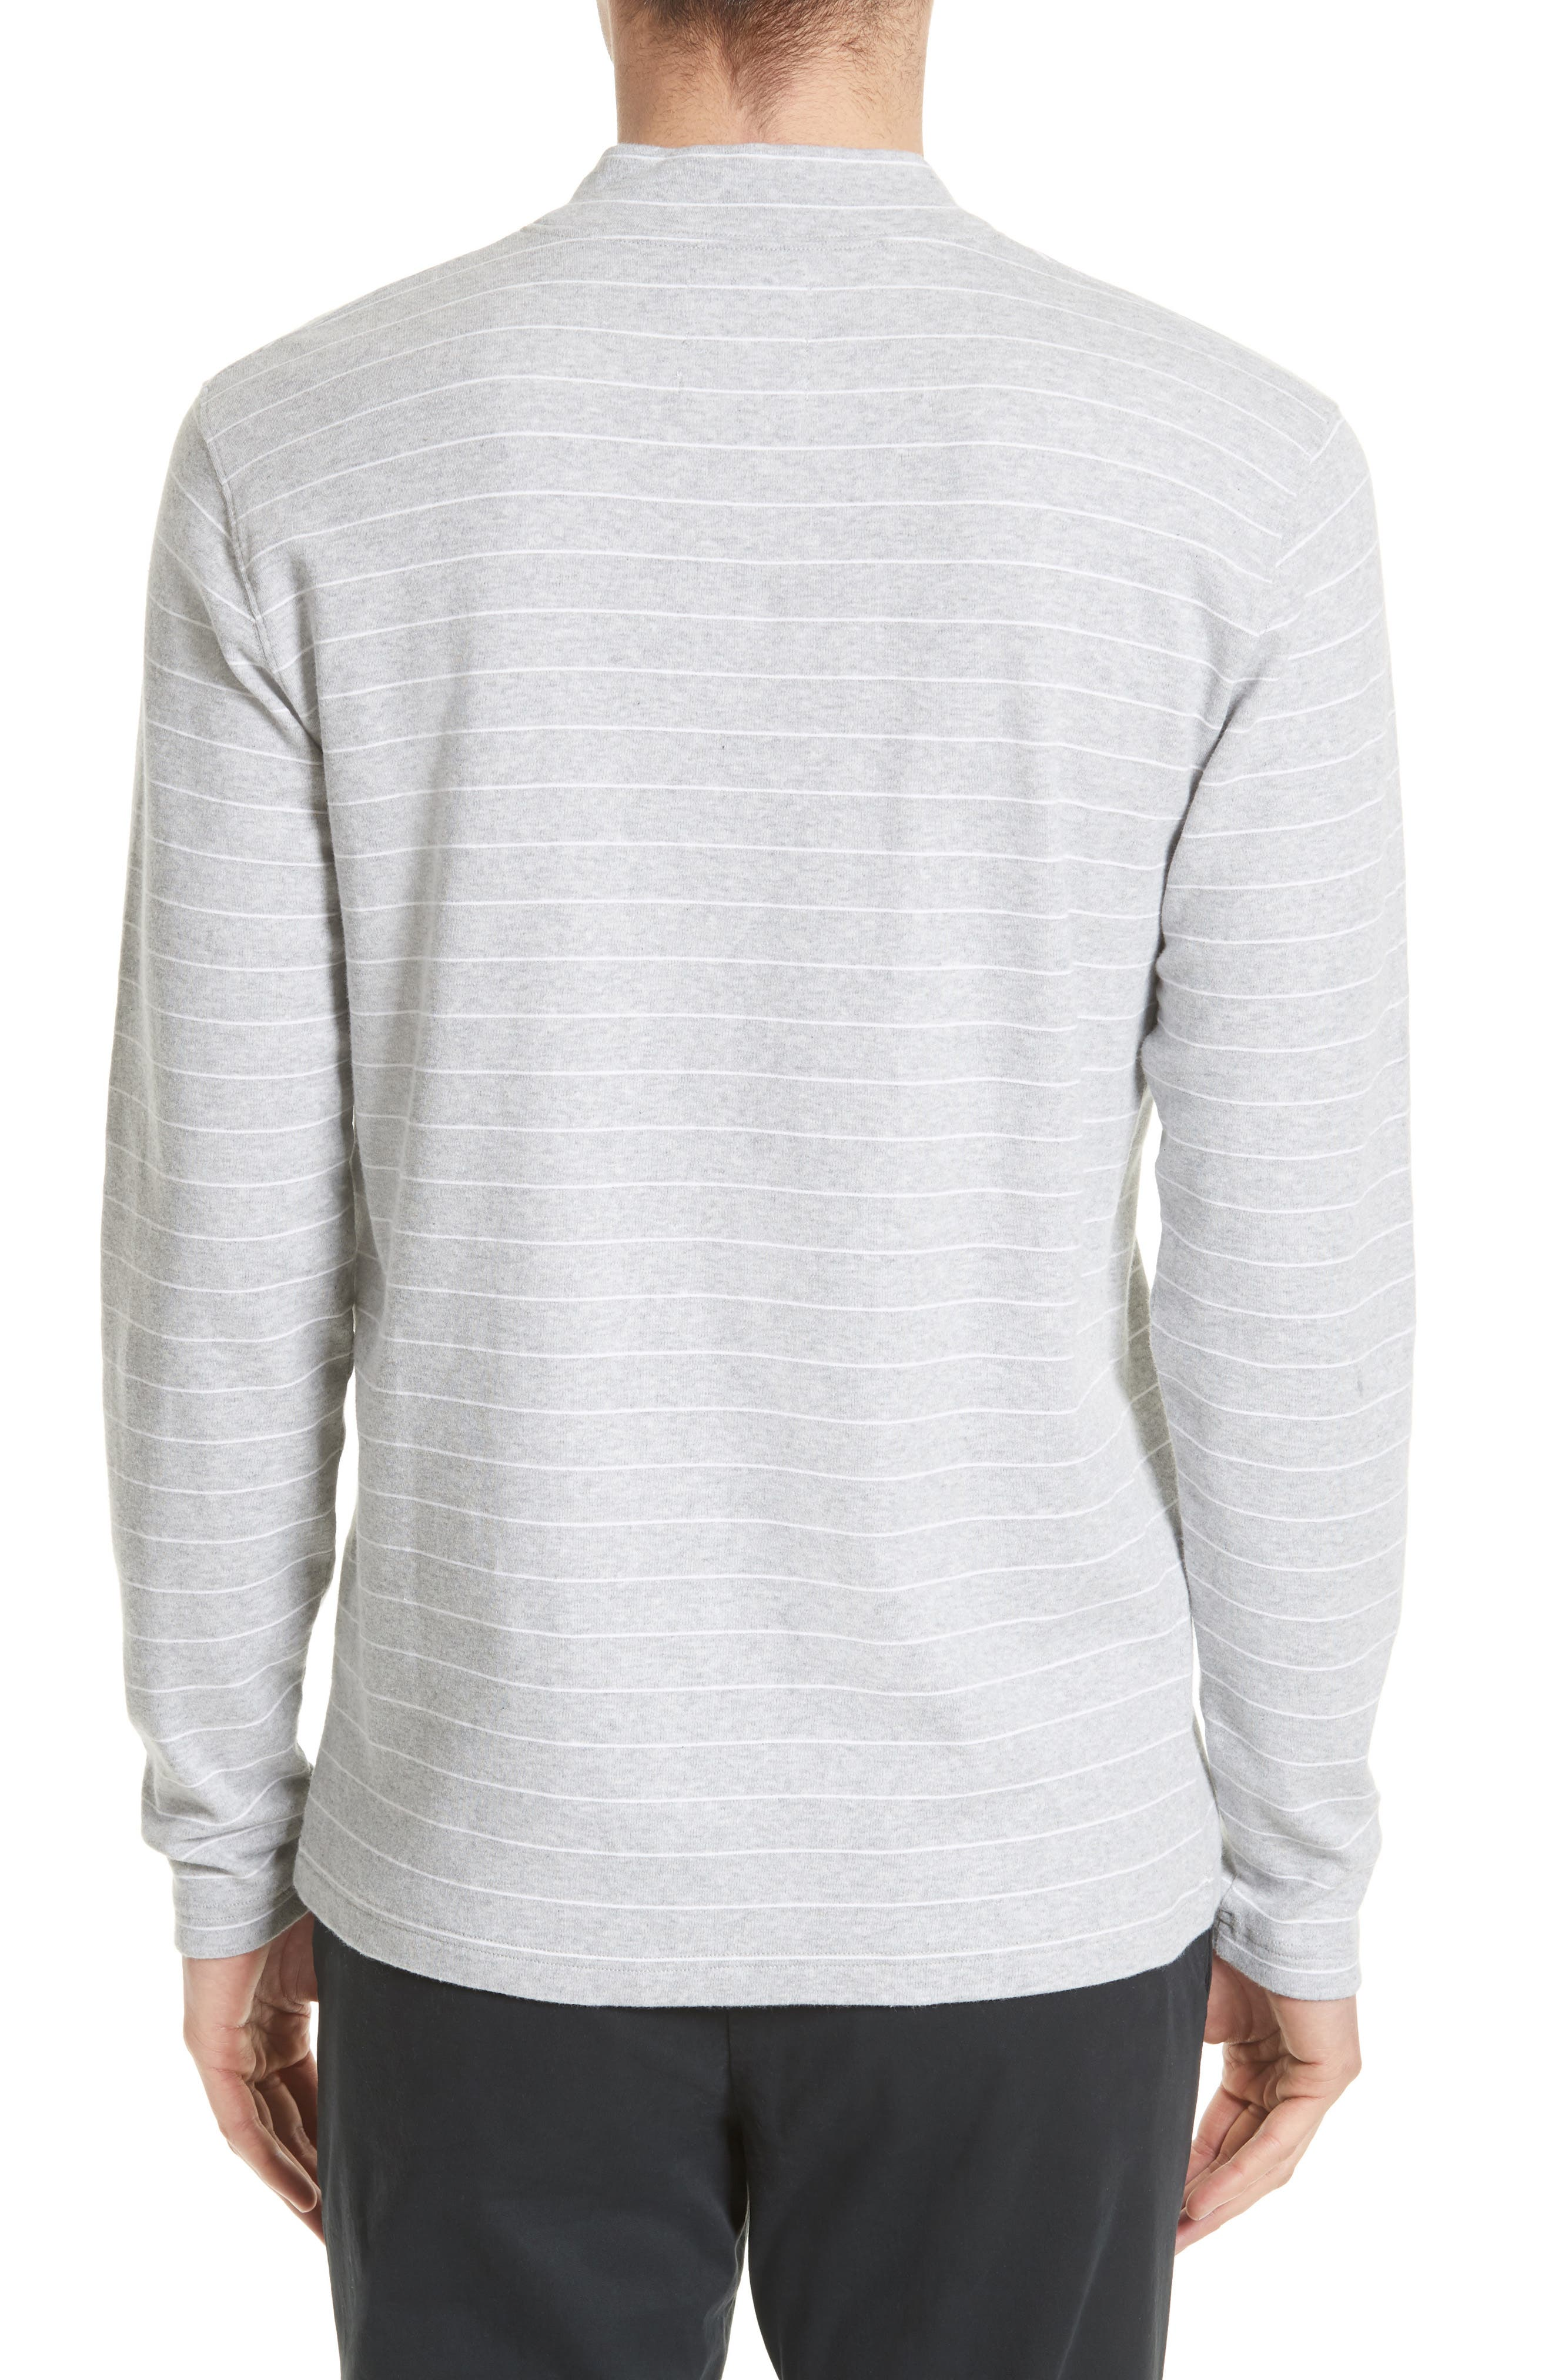 NORSE PROJECTS,                             Harald Mock Neck T-Shirt,                             Alternate thumbnail 2, color,                             050